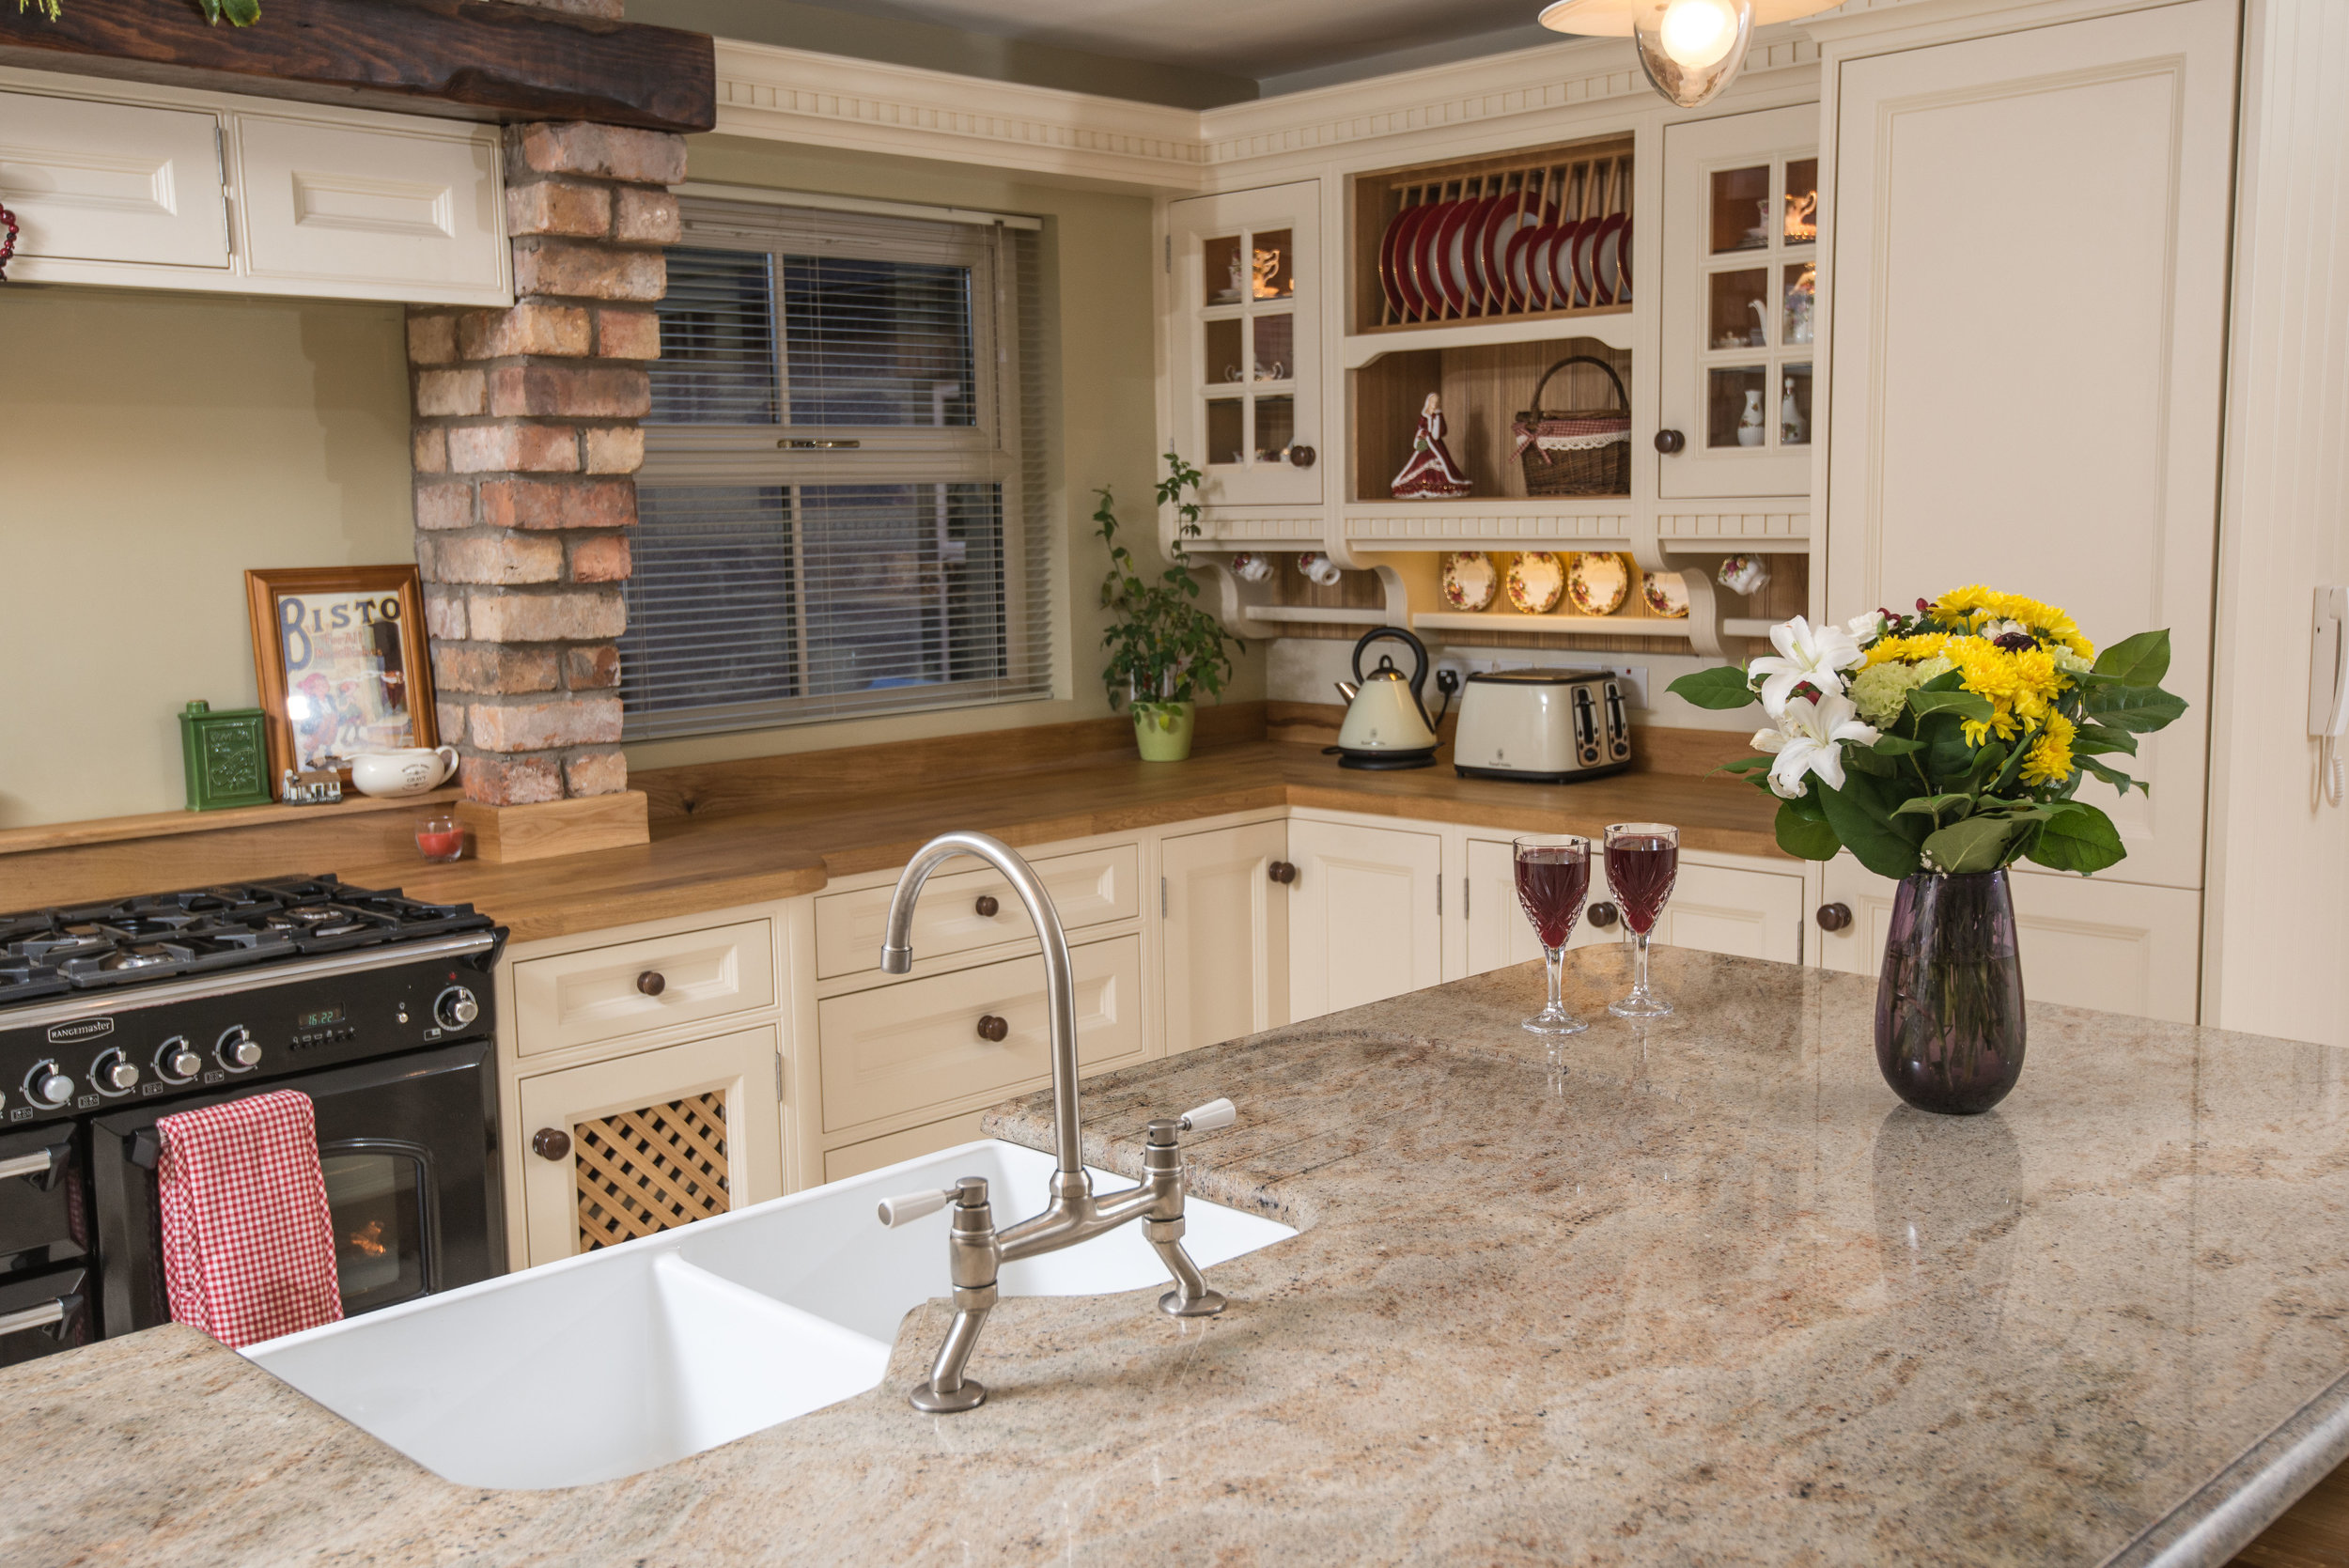 ELM -007 -Hand painted kitchen.JPG